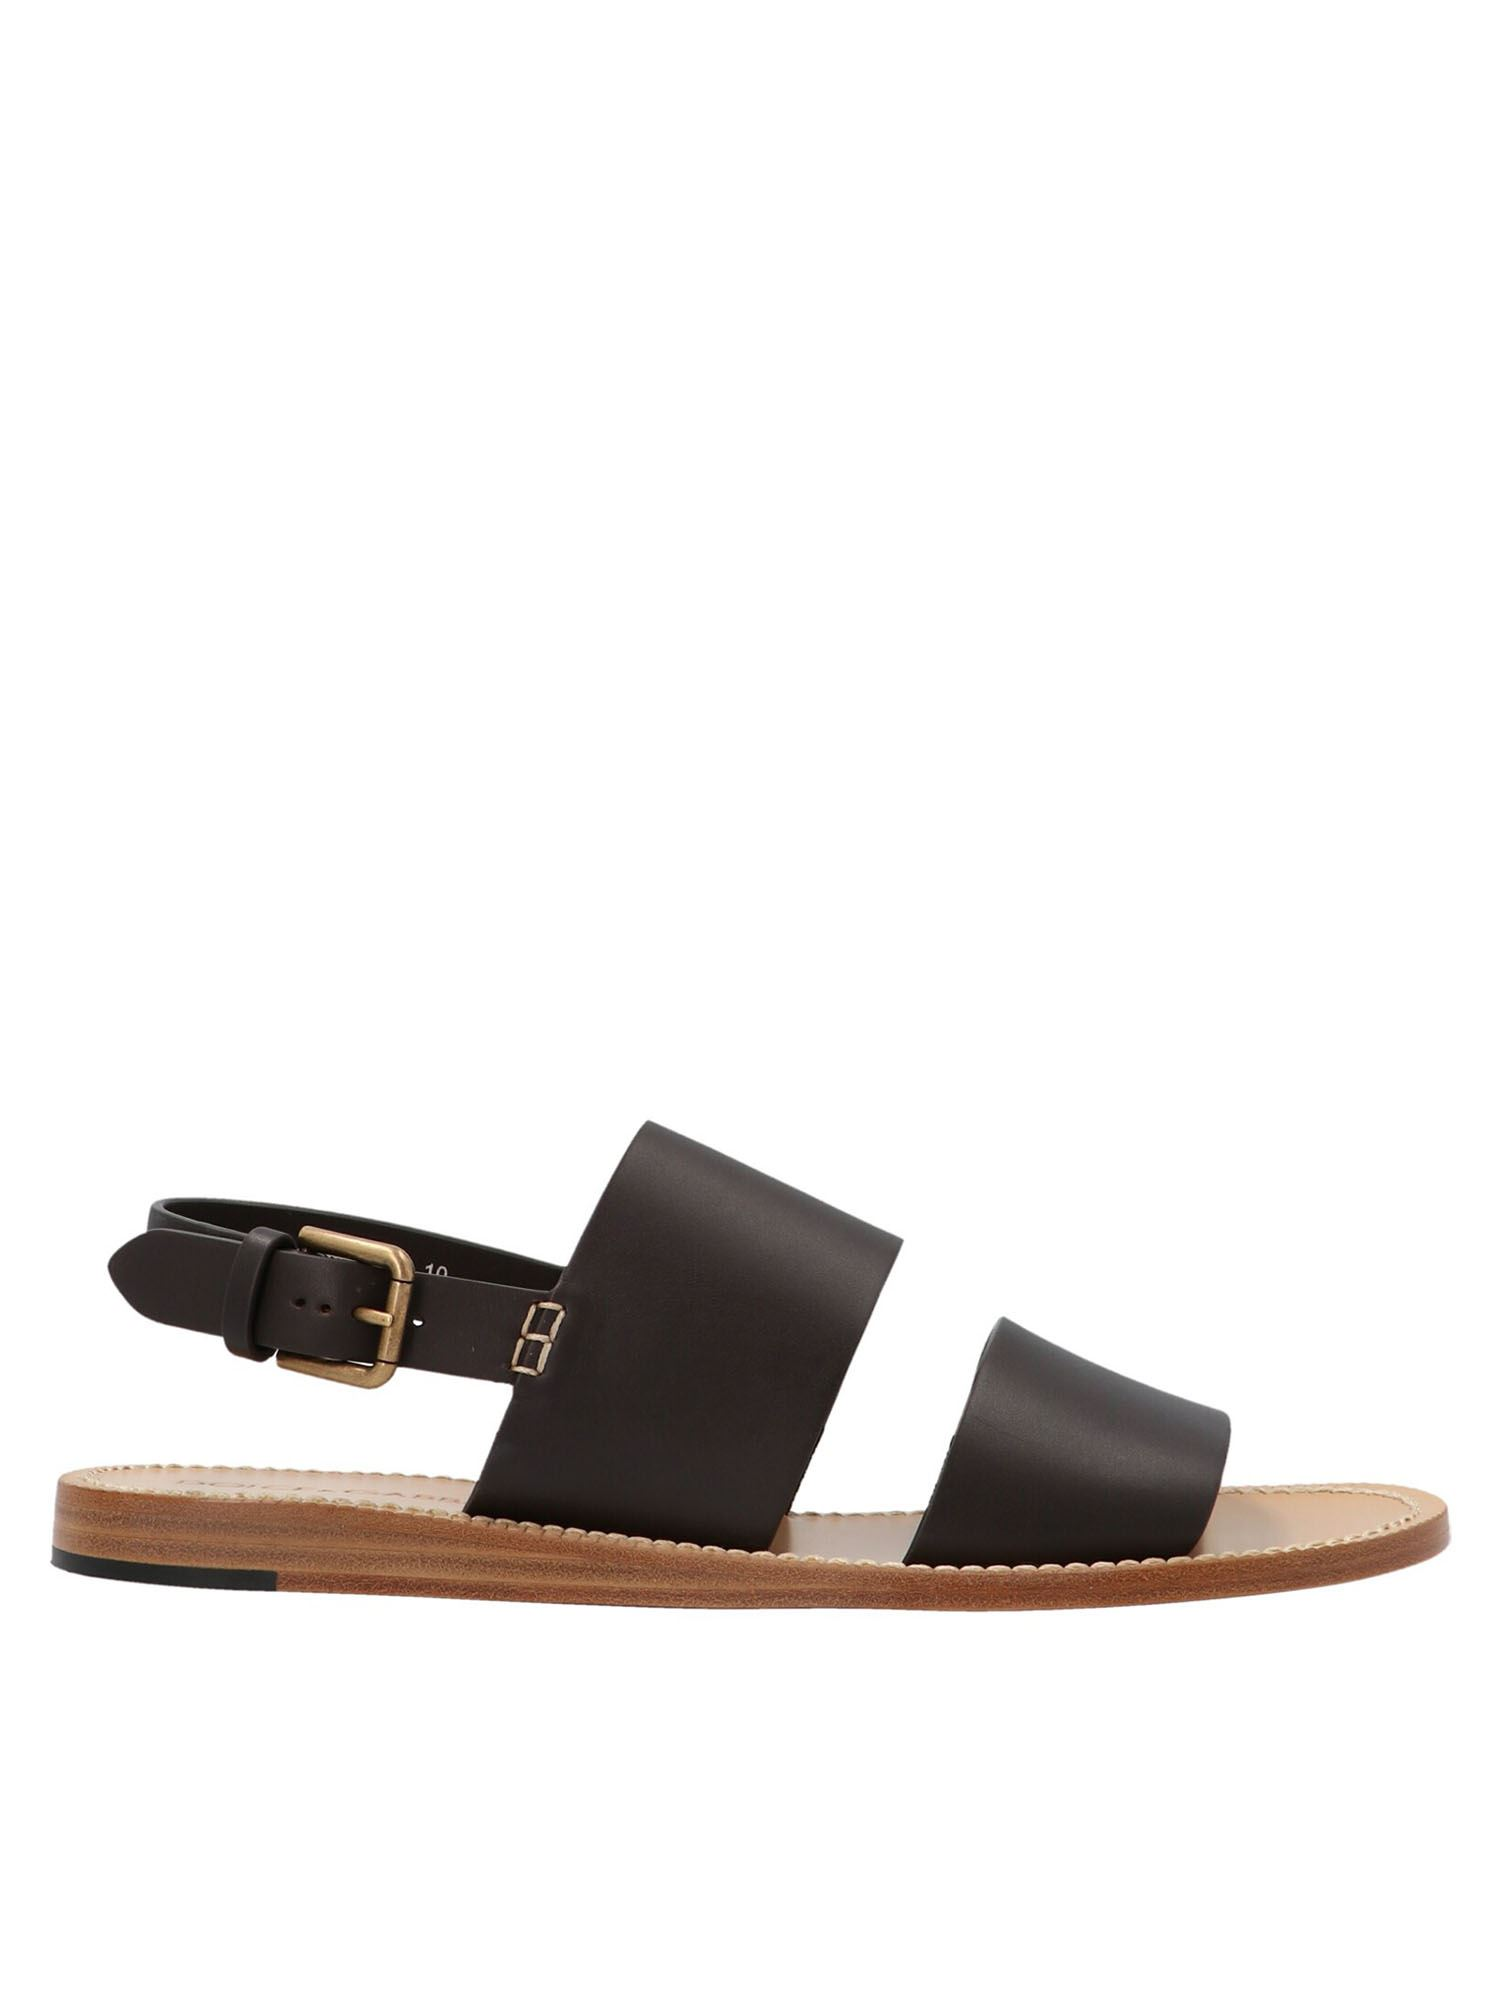 Dolce & Gabbana Leathers PANTHEON SANDALS IN BROWN